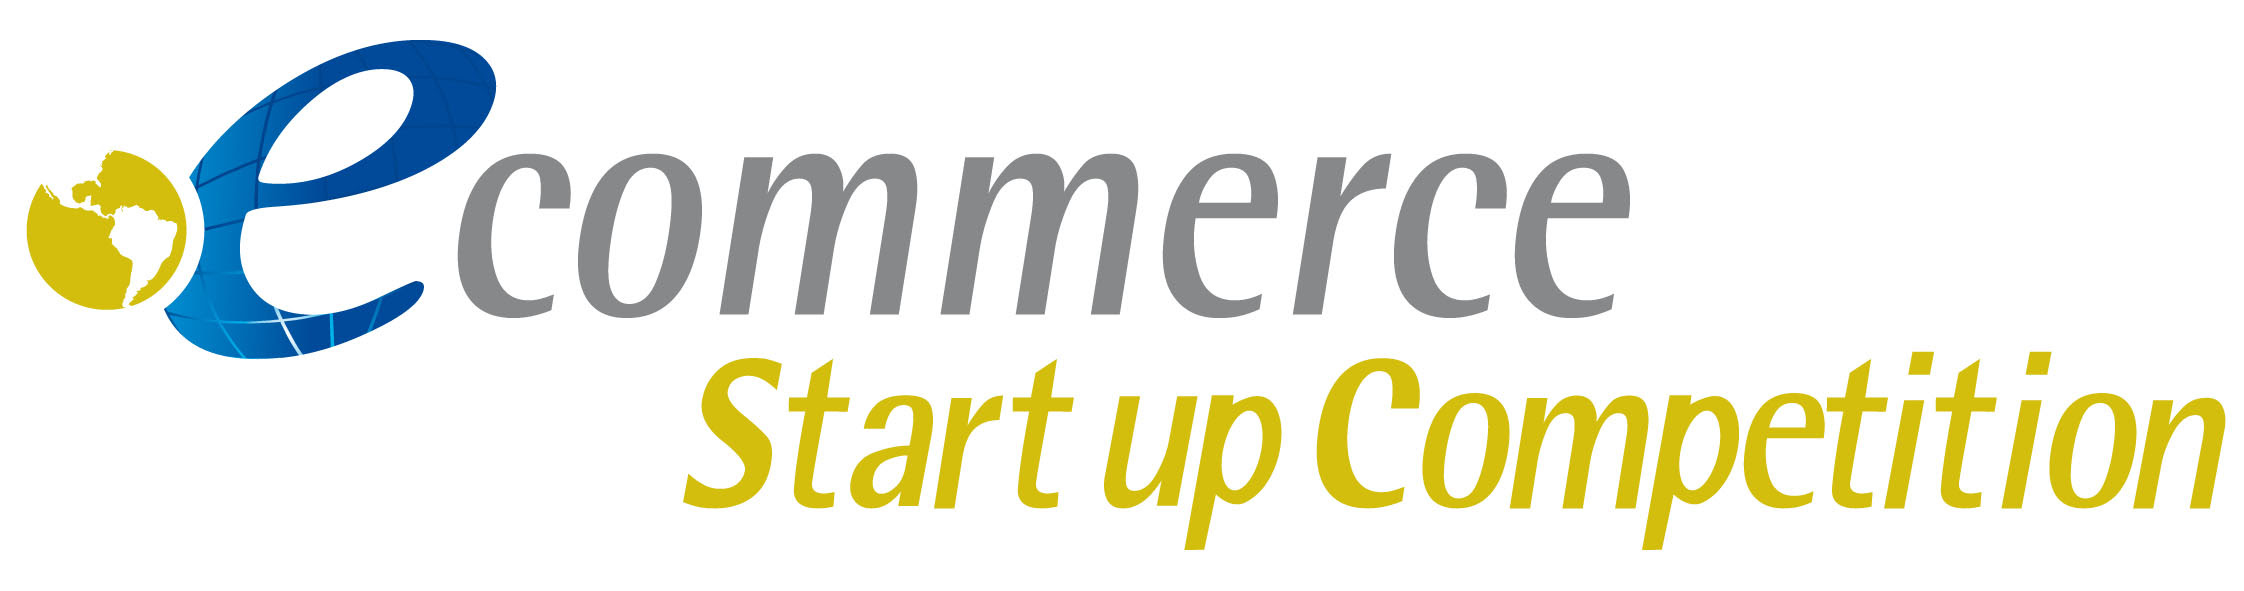 StartUpCompetition